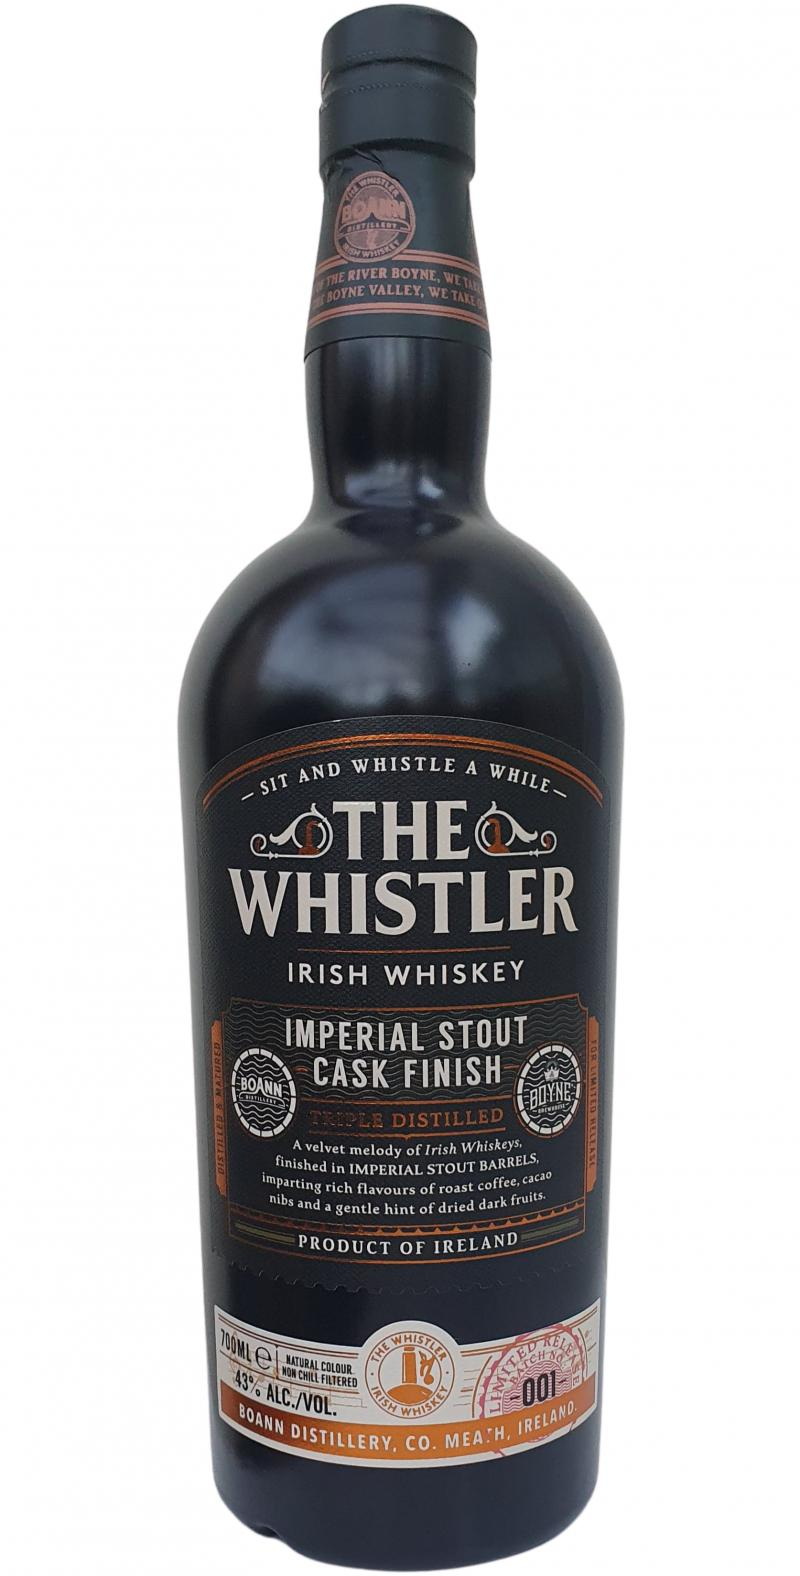 The Whistler Imperial Stout Finish BoD